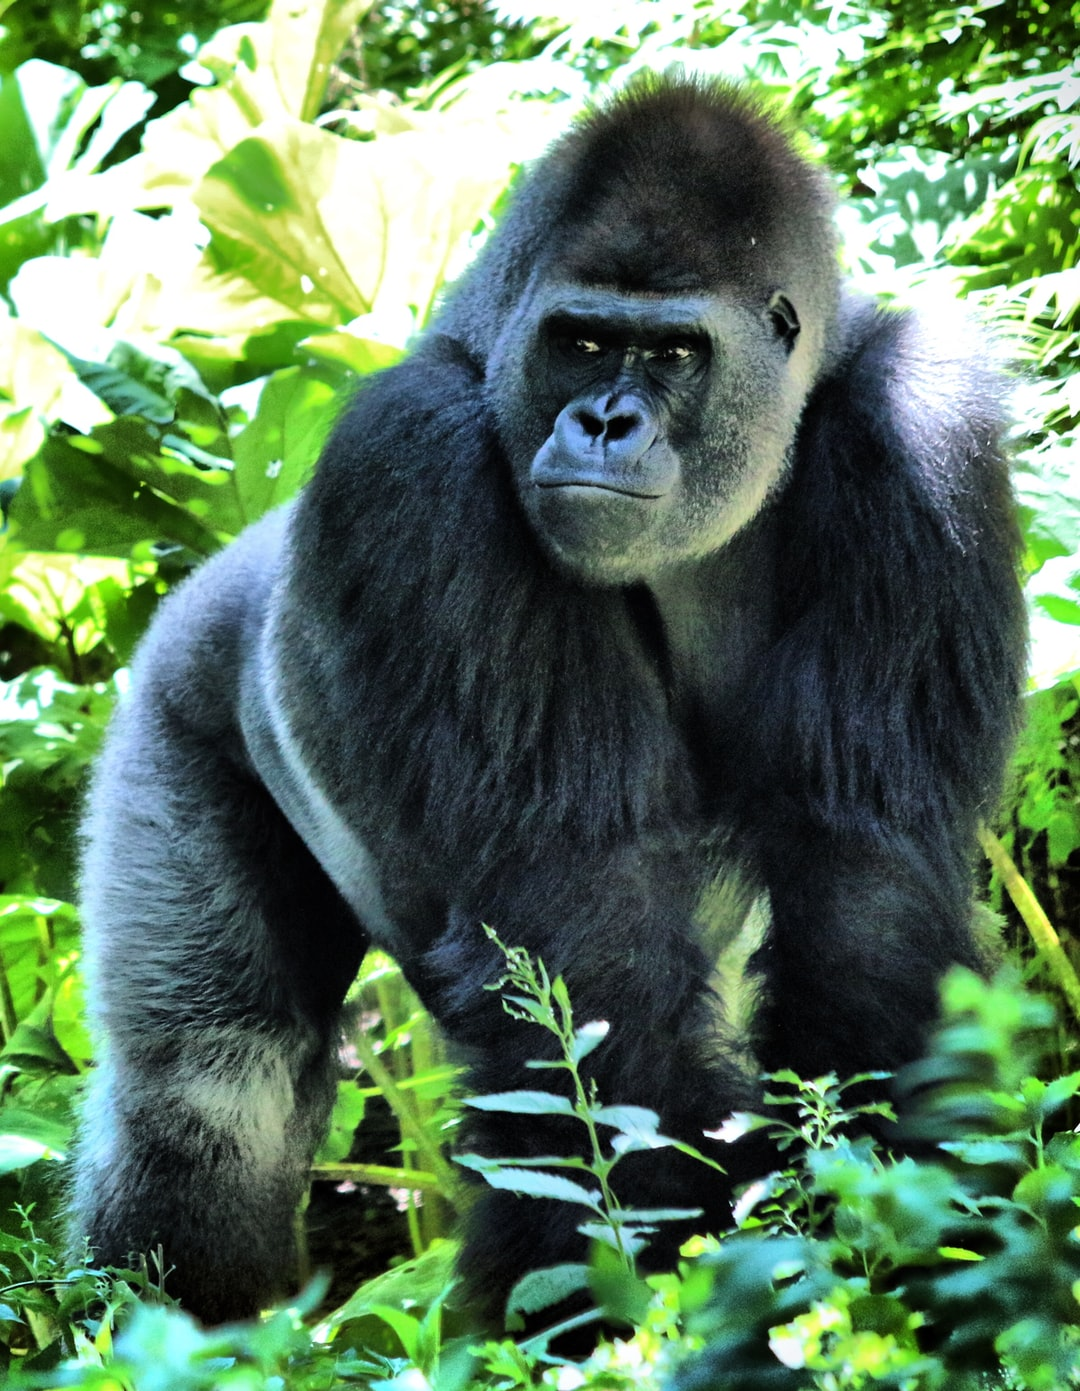 Gorilla in green surroundings.  Black and green are the colors of the day.